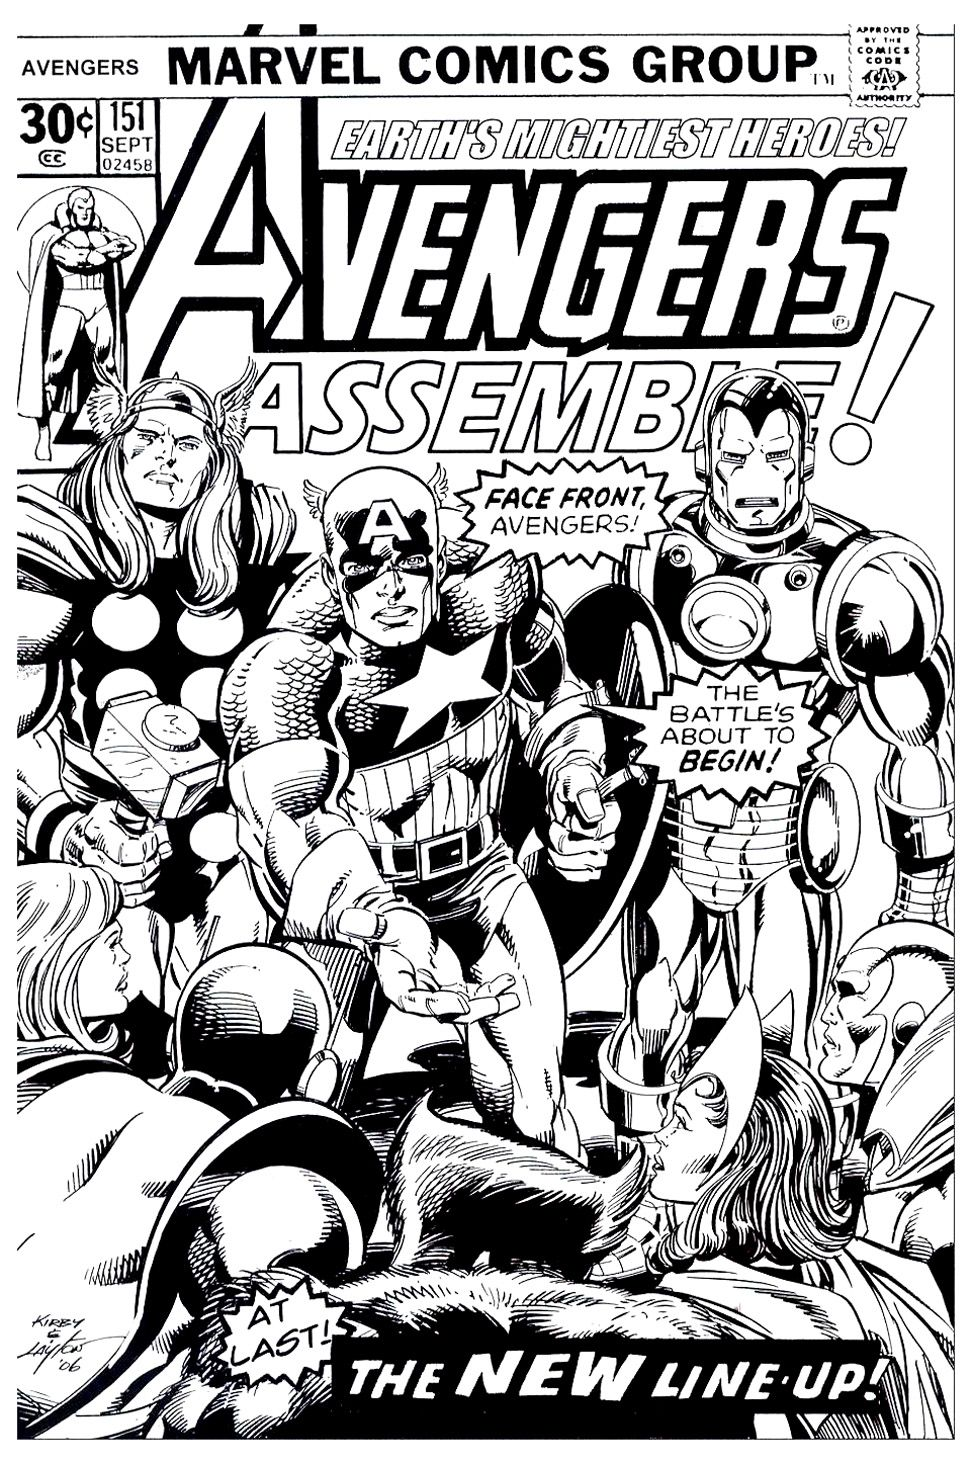 Free Coloring Page Adult Avengers Couverture A Cover Of Marvel Comic Book In Black And White With The Whole Team